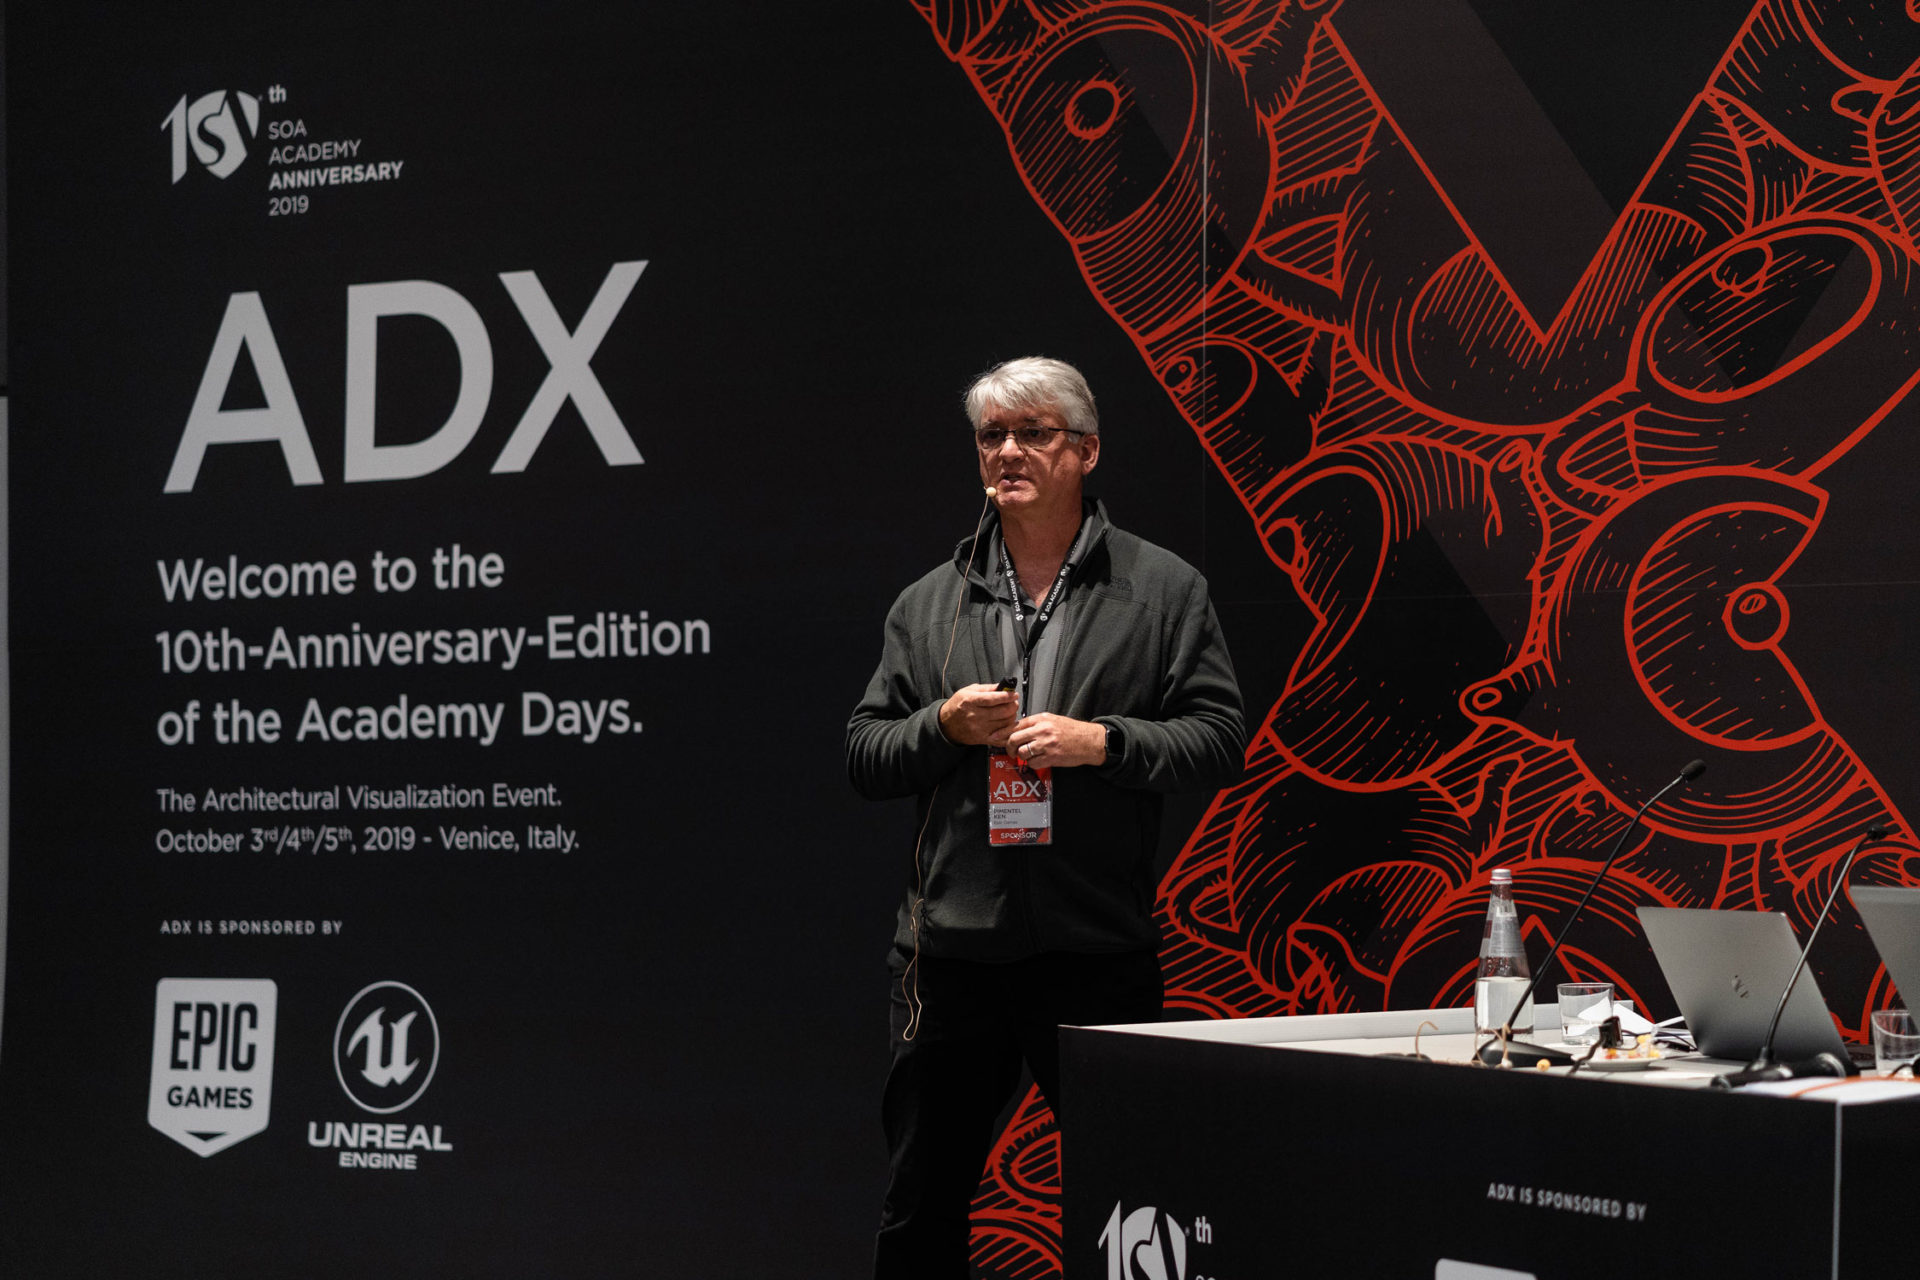 ADX: the highlights - SOA Academy